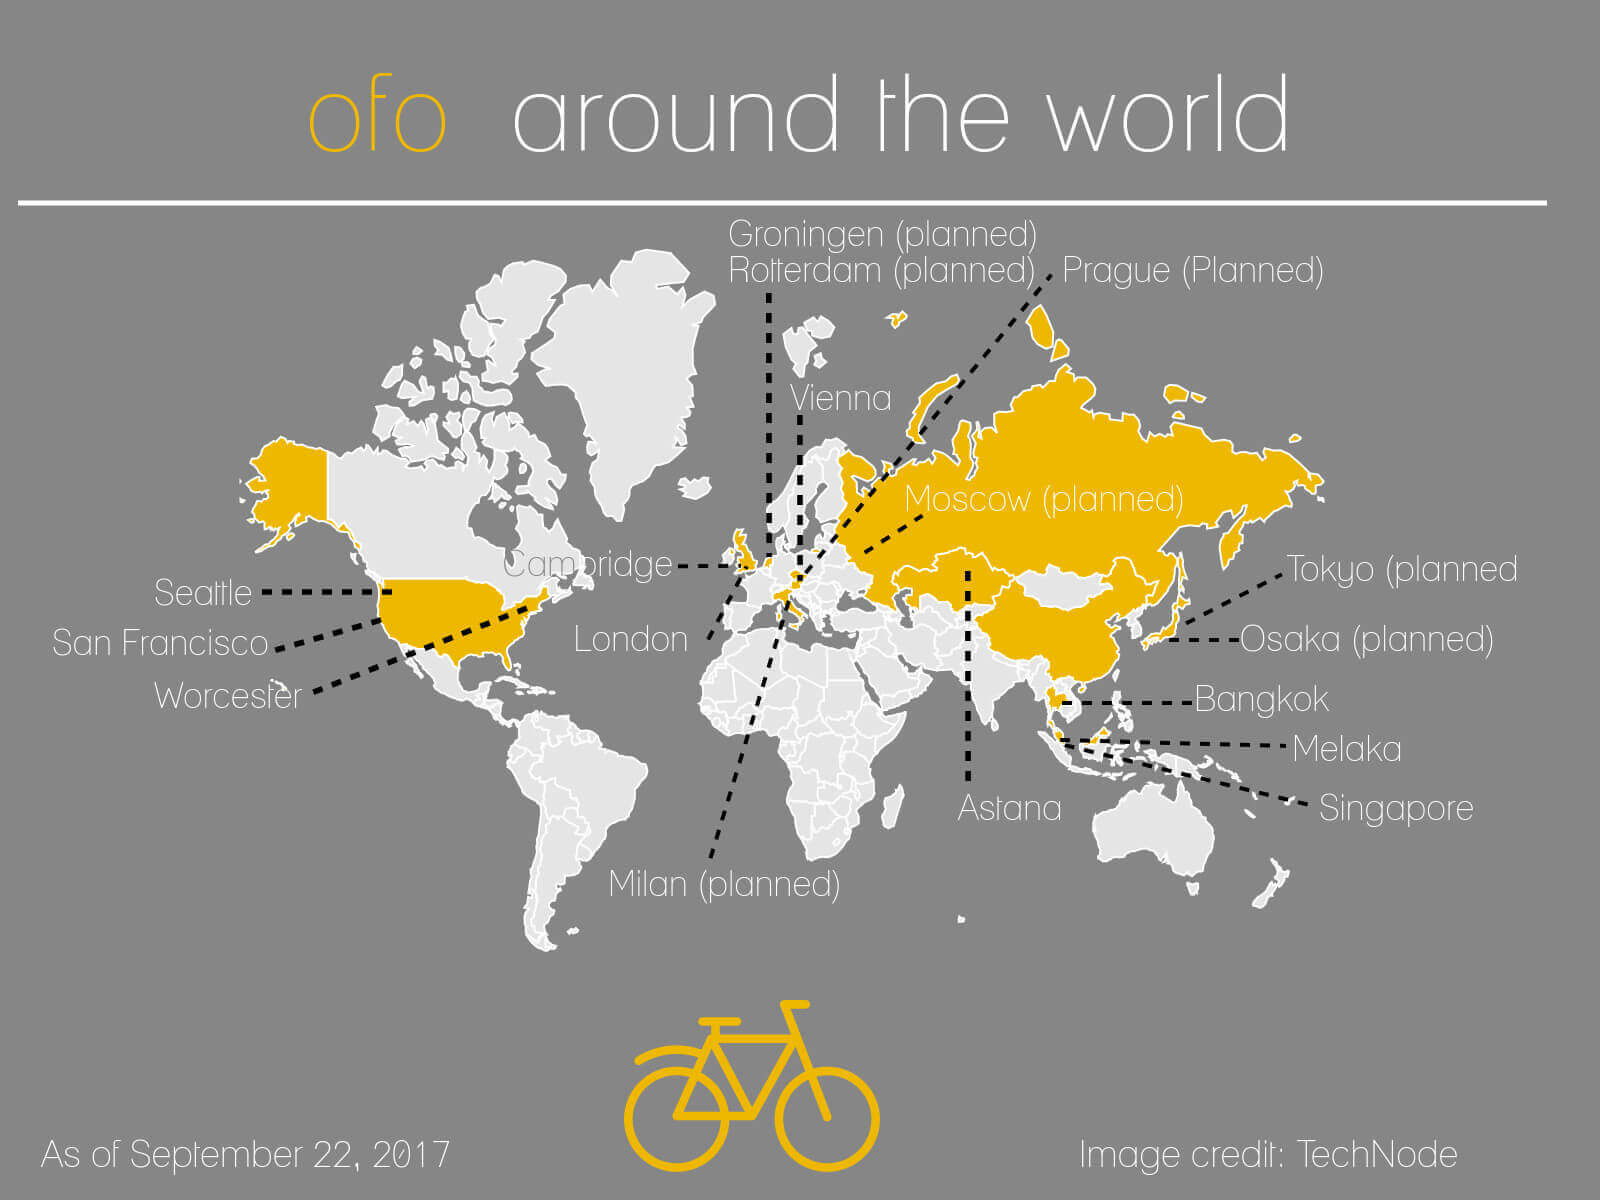 ofo-worldwide  - ofo worldwide - How Bike Sharing System Can Change the World